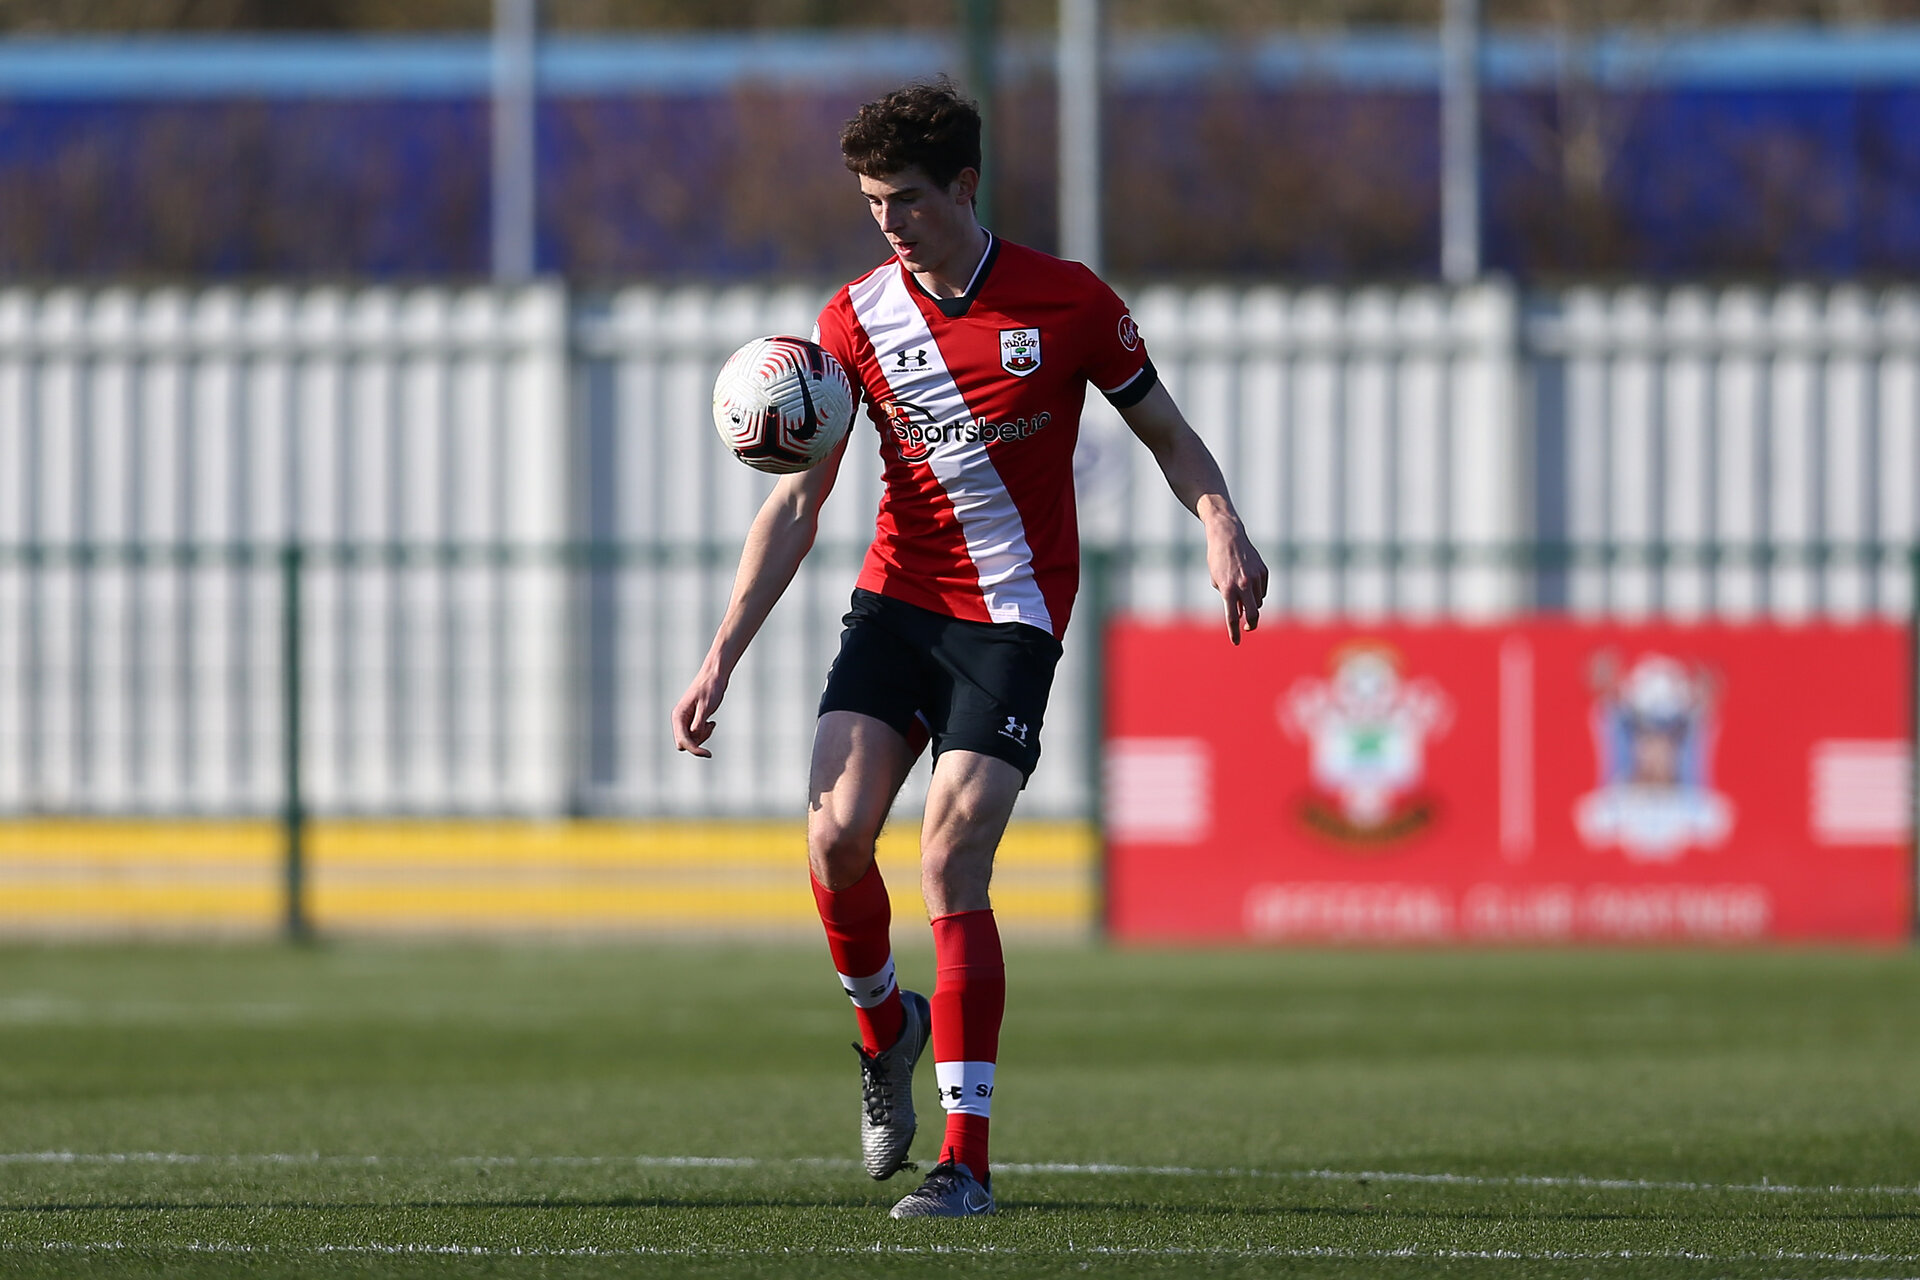 SOUTHAMPTON, ENGLAND - FEBRUARY 27: Will Tizzard of Southampton during Premier League 2 match between Southampton B Team and Manchester United U23s at The Snows Stadium on February 27, 2021 in Southampton, England. (Photo by Isabelle Field/Southampton FC via Getty Images)